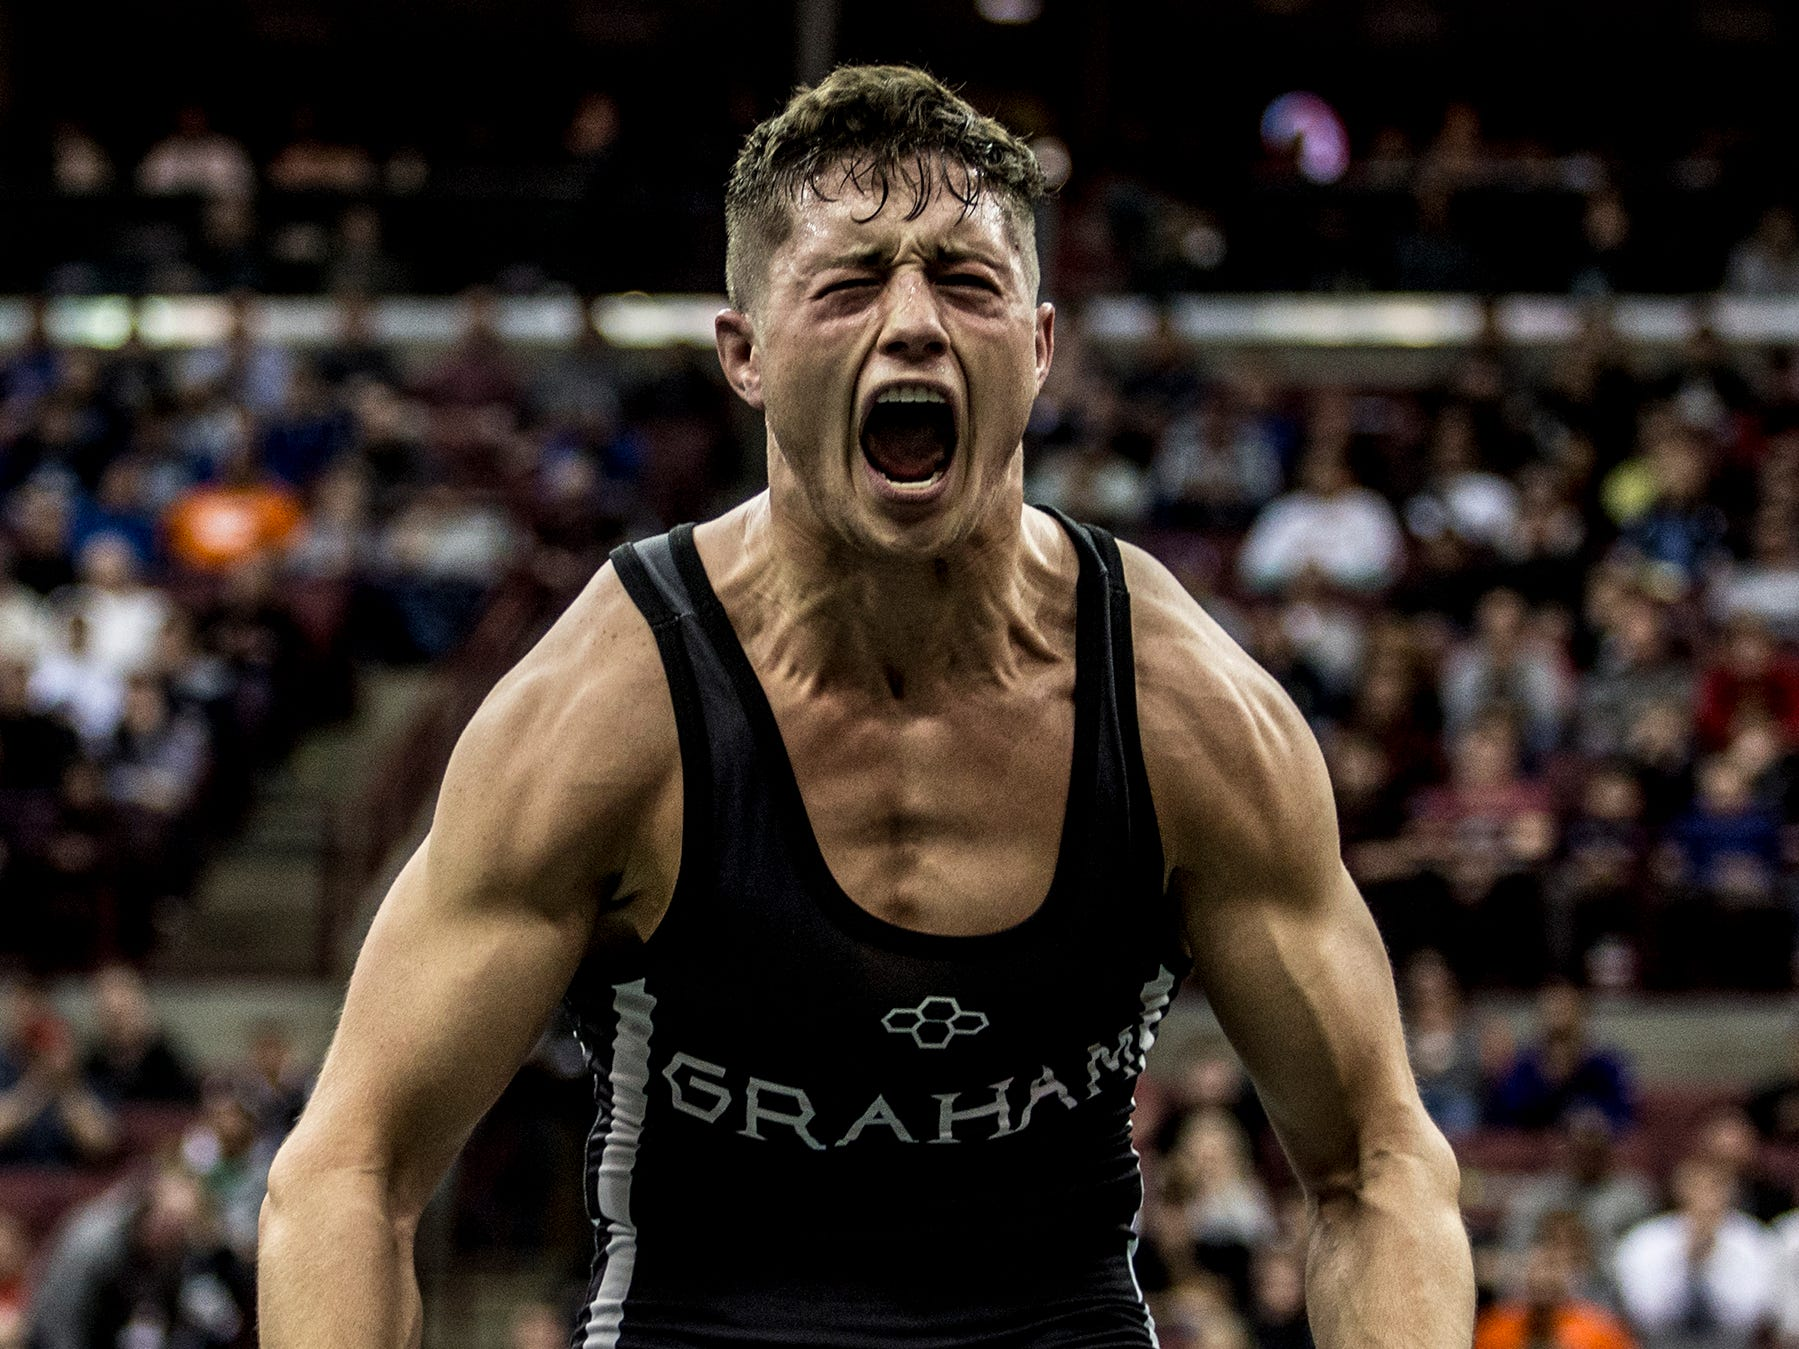 Joey Sanchez of ST. Paris Graham Local reacts after beating Jason Hubbard of Studenville in the division 11 152 pound weight class 2018 state wrestling championships.